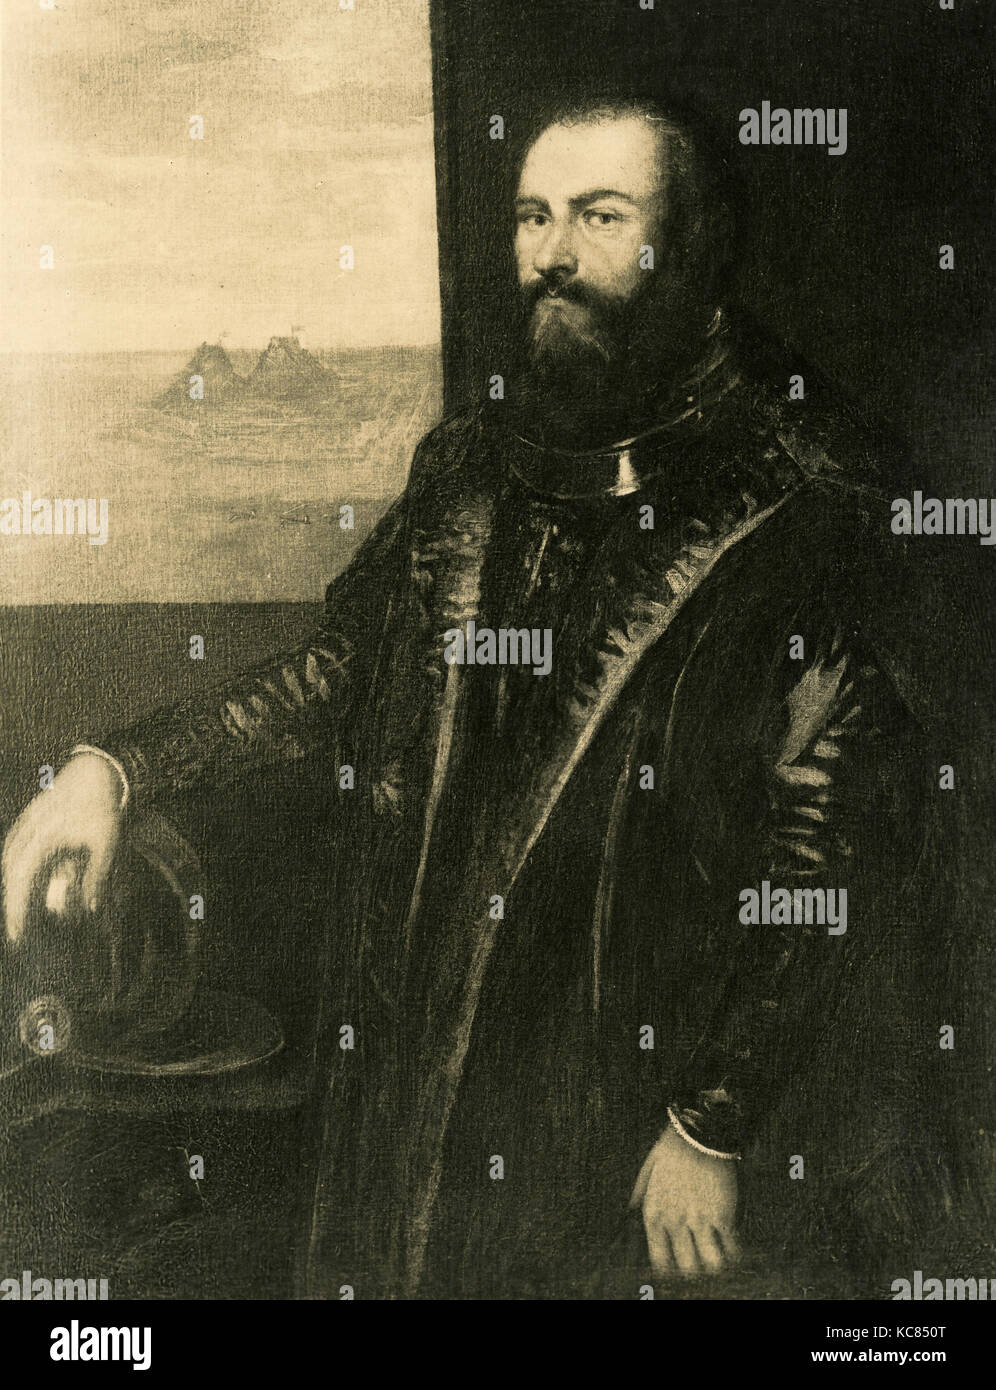 Portrait of Venetian admiral Sebastiano Veniero, painting by Jacopo Robusti aka Tintoretto - Stock Image